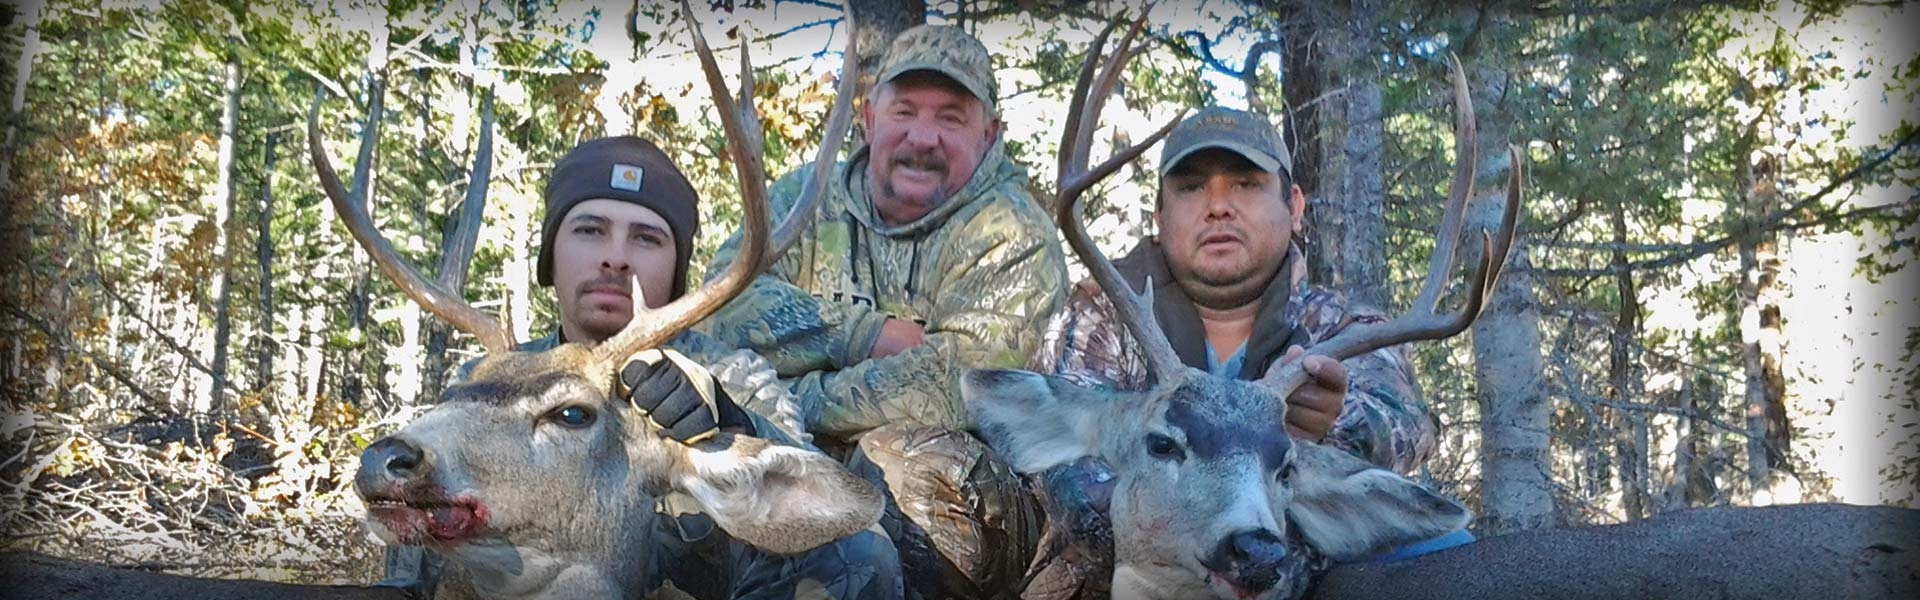 Guided New Mexico Mule Deer Hunts | Premier Outfitter